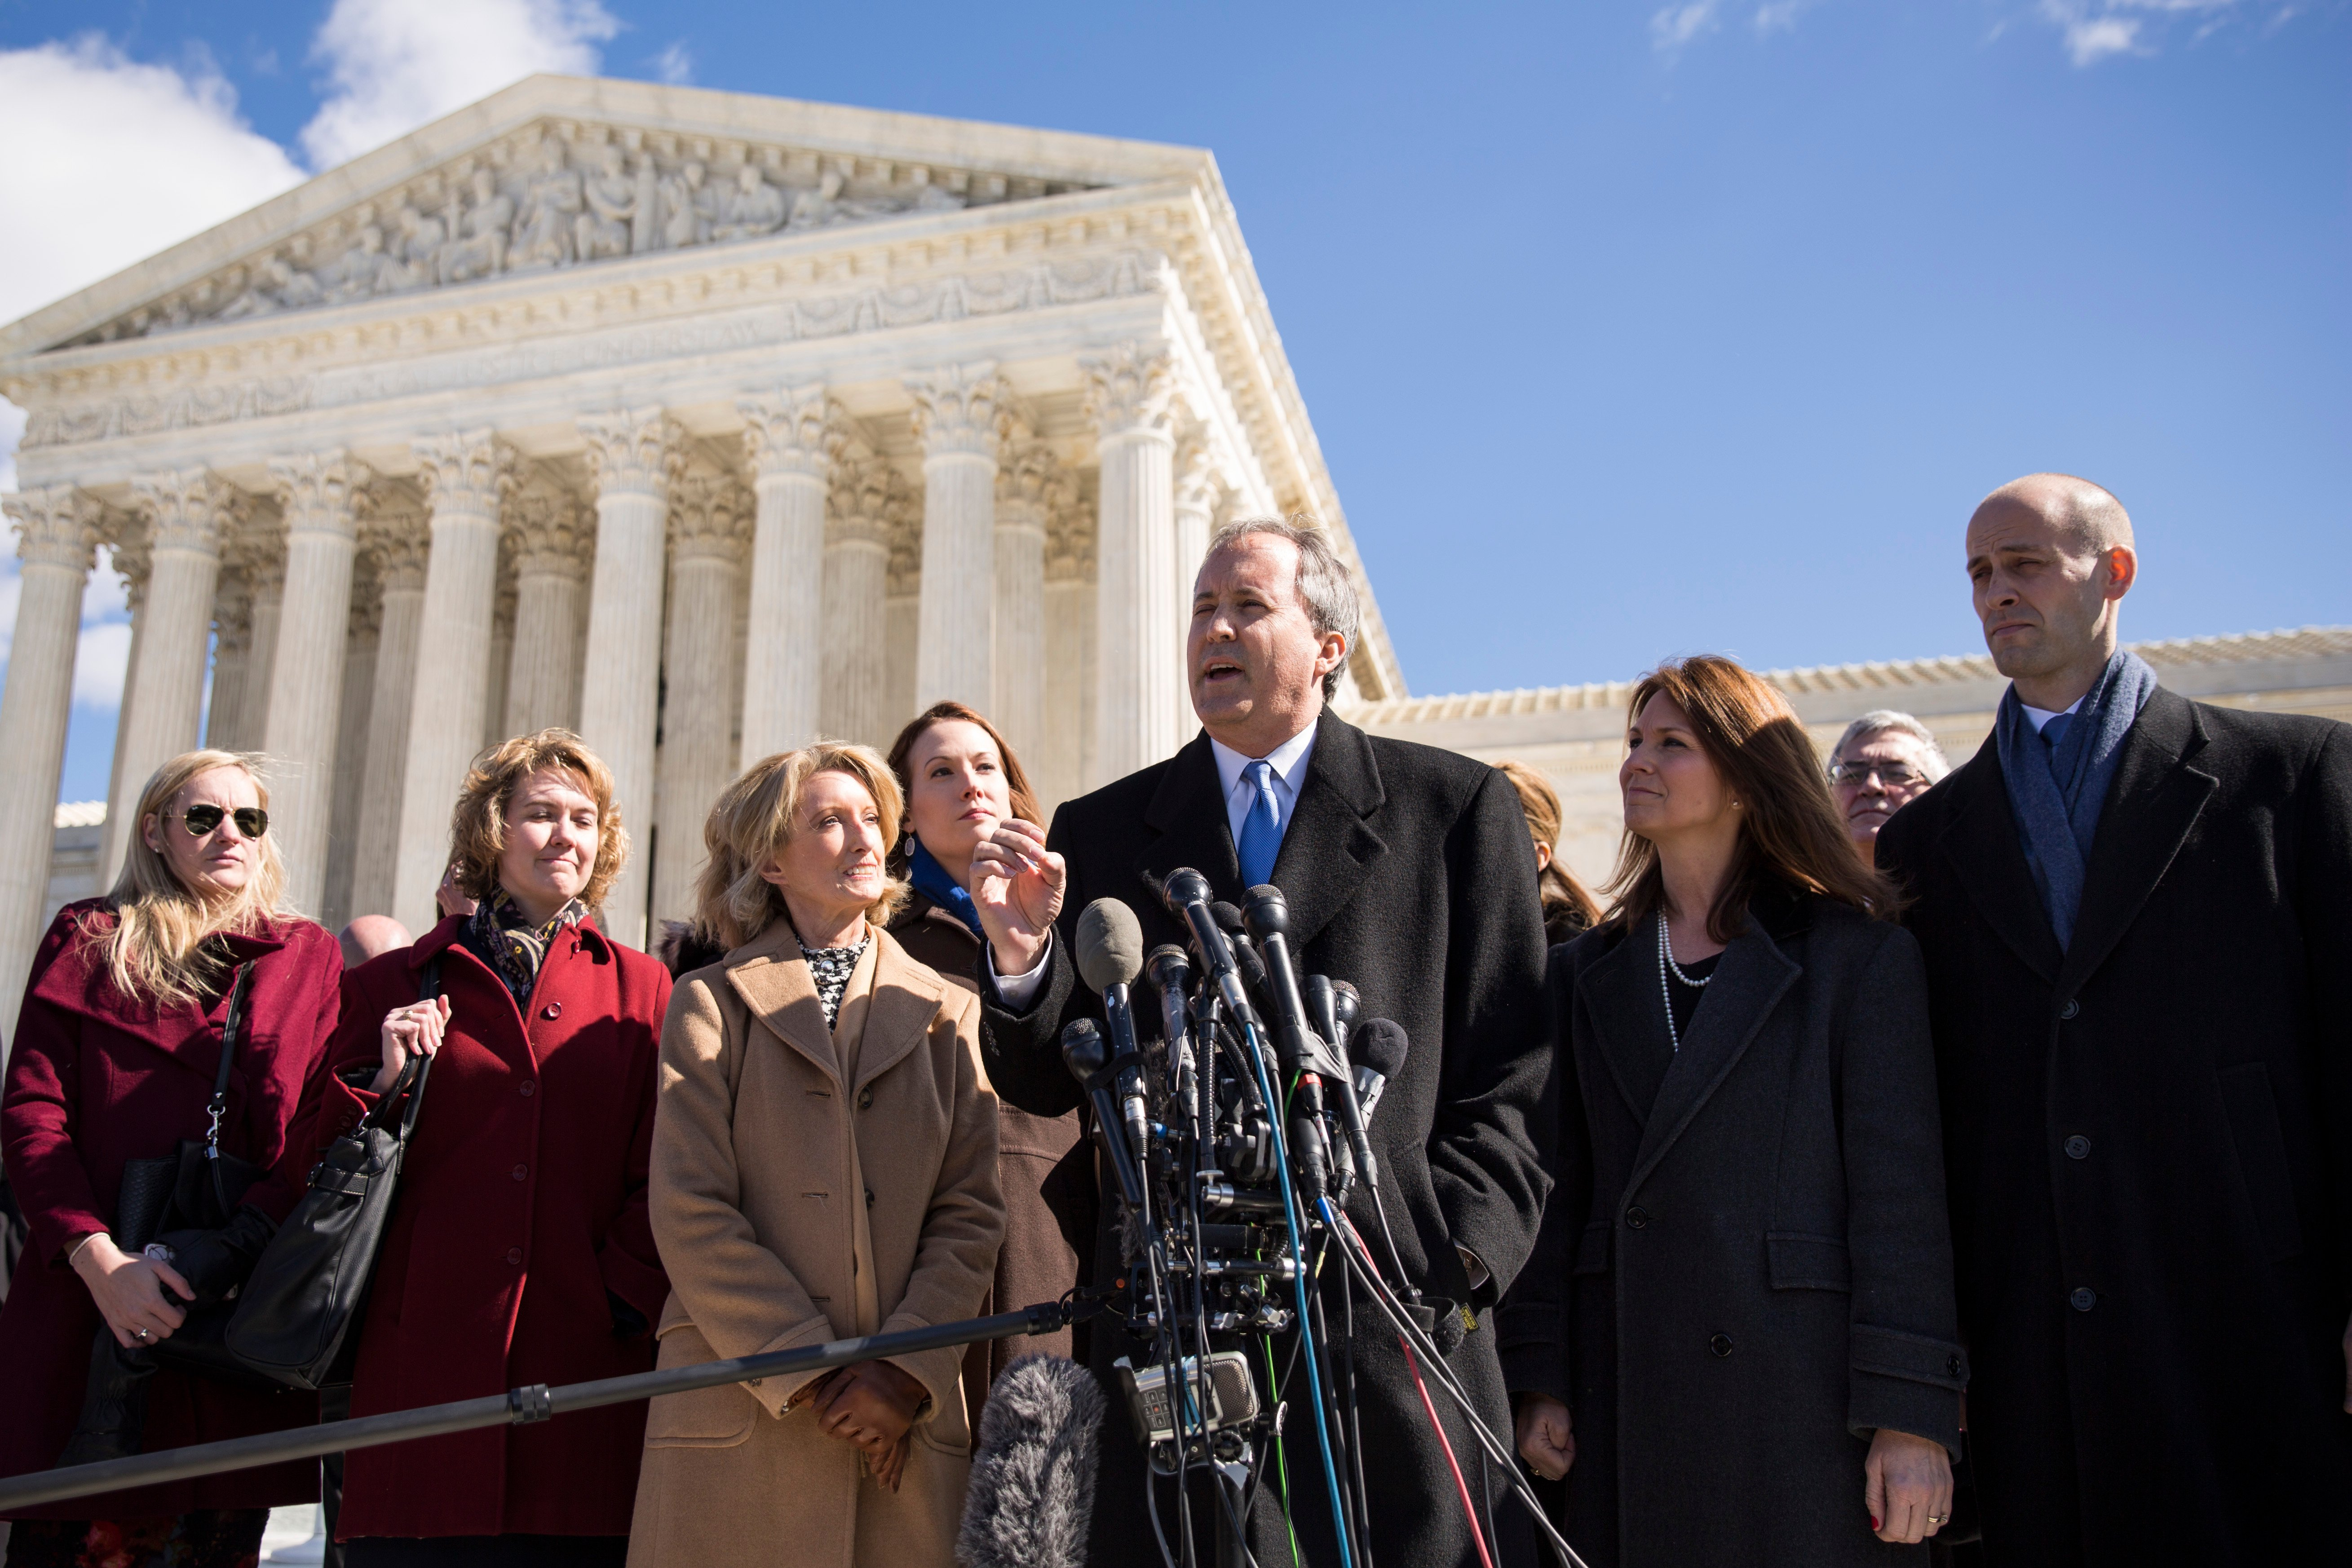 Texas Attorney General Ken Paxton speaks in front of the Supreme Court on March 2, 2016. (Drew Angerer/Getty Images)